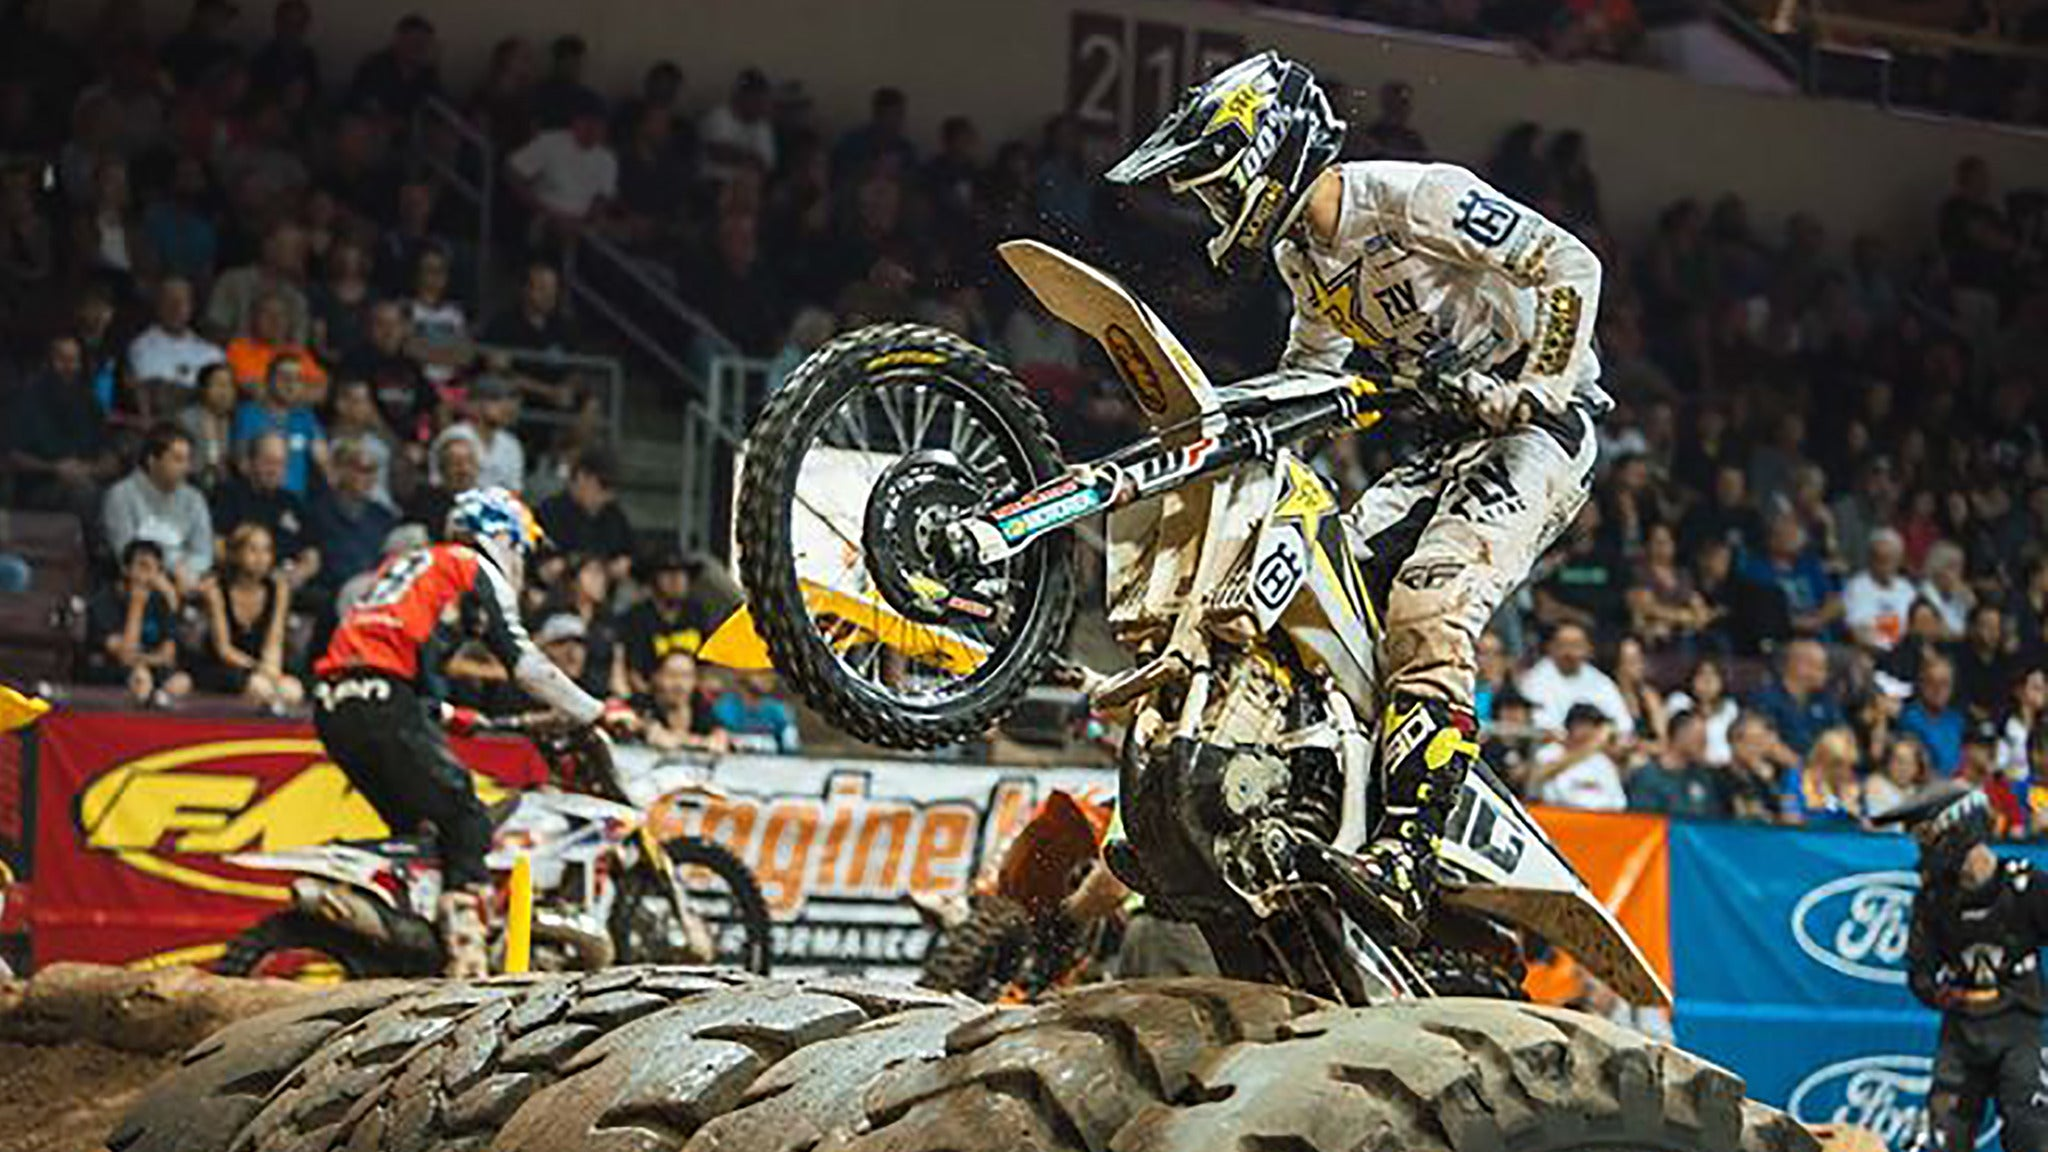 EnduroCross - Extreme Off Road Racing at The Underground